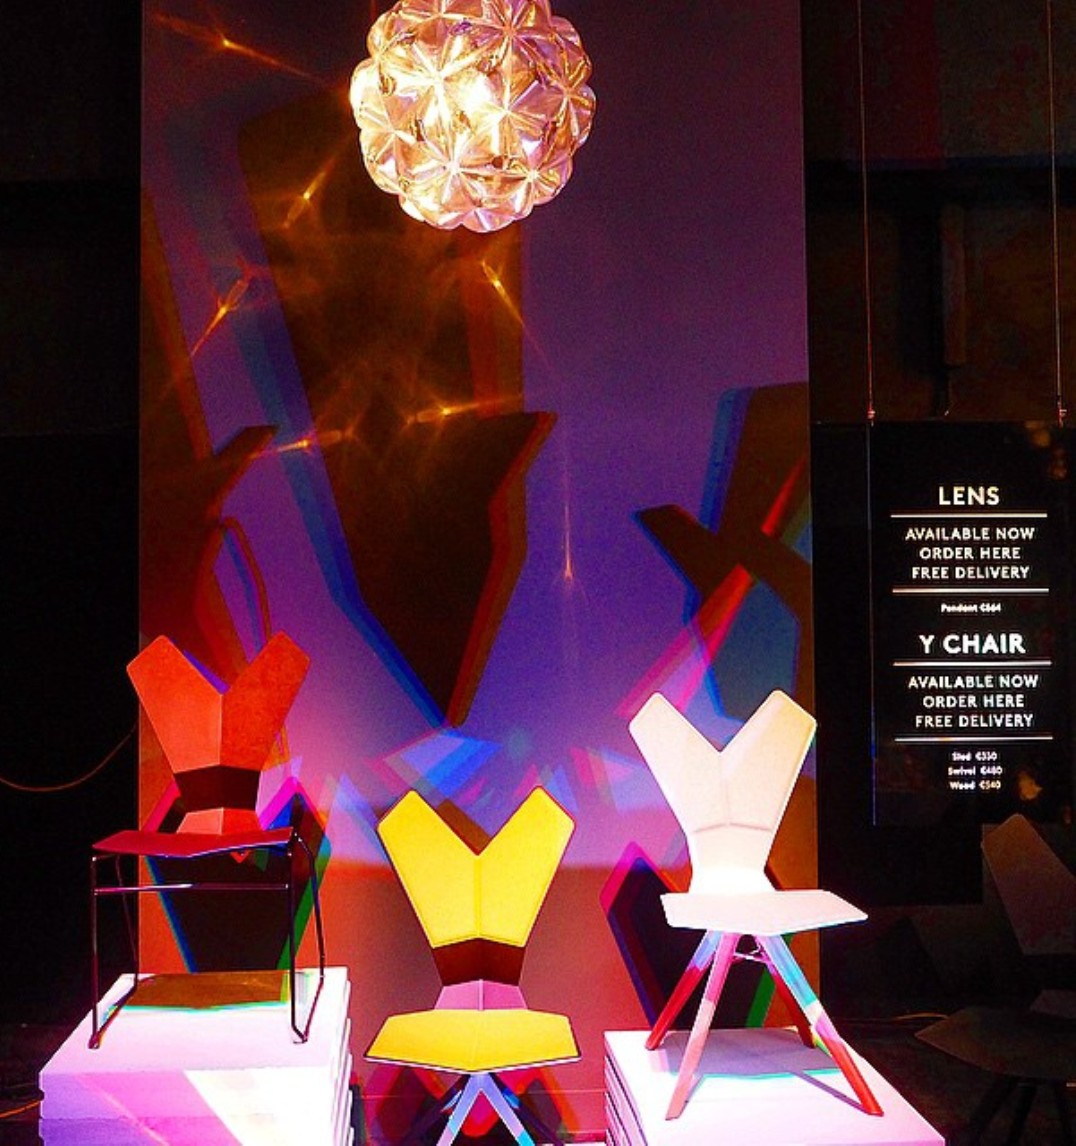 lens and Y chairs tom dixon